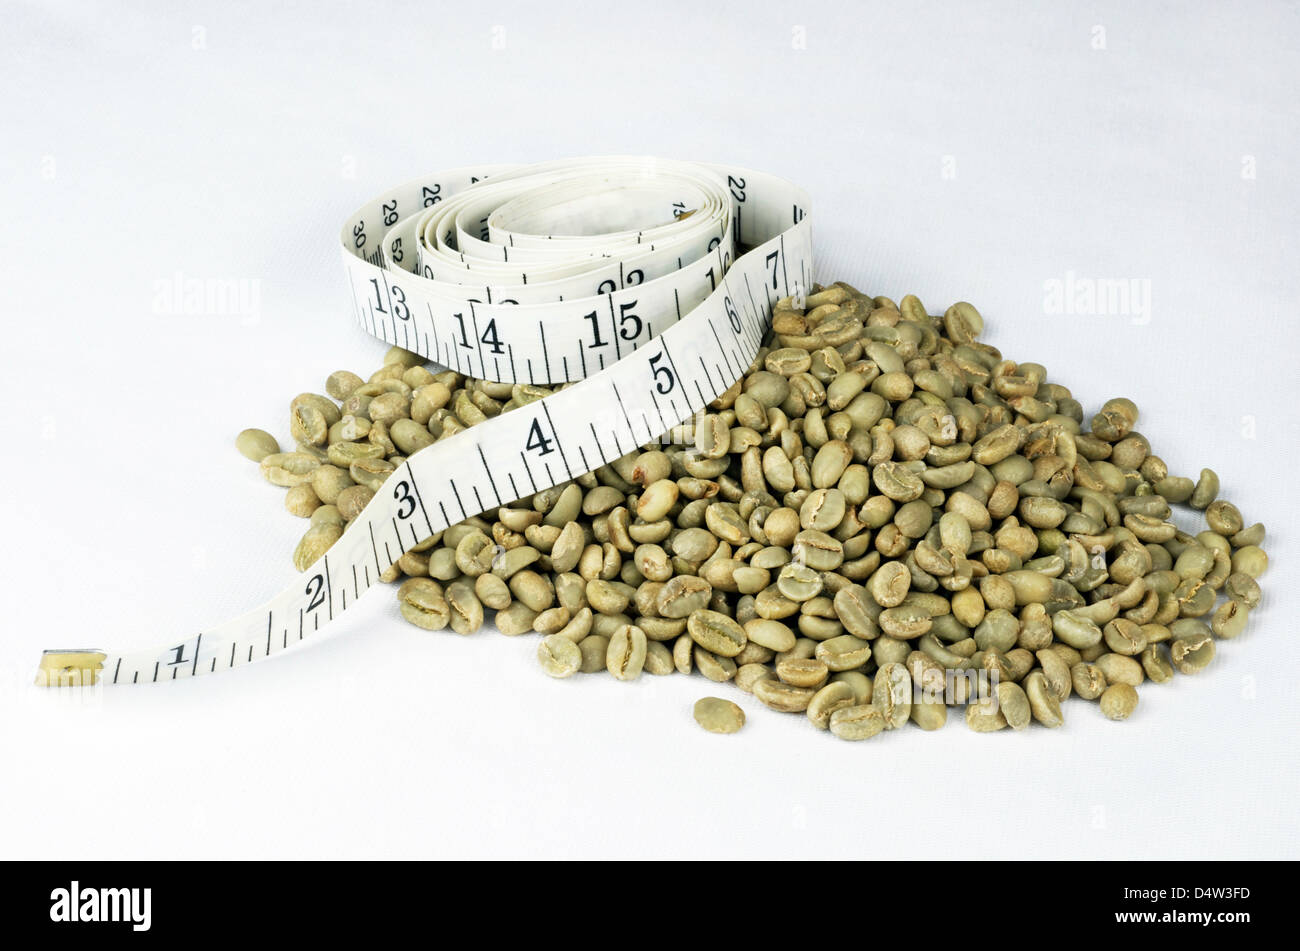 Green coffee beans in a pile with a white tape measure rolled up and set on top of the beans. - Stock Image